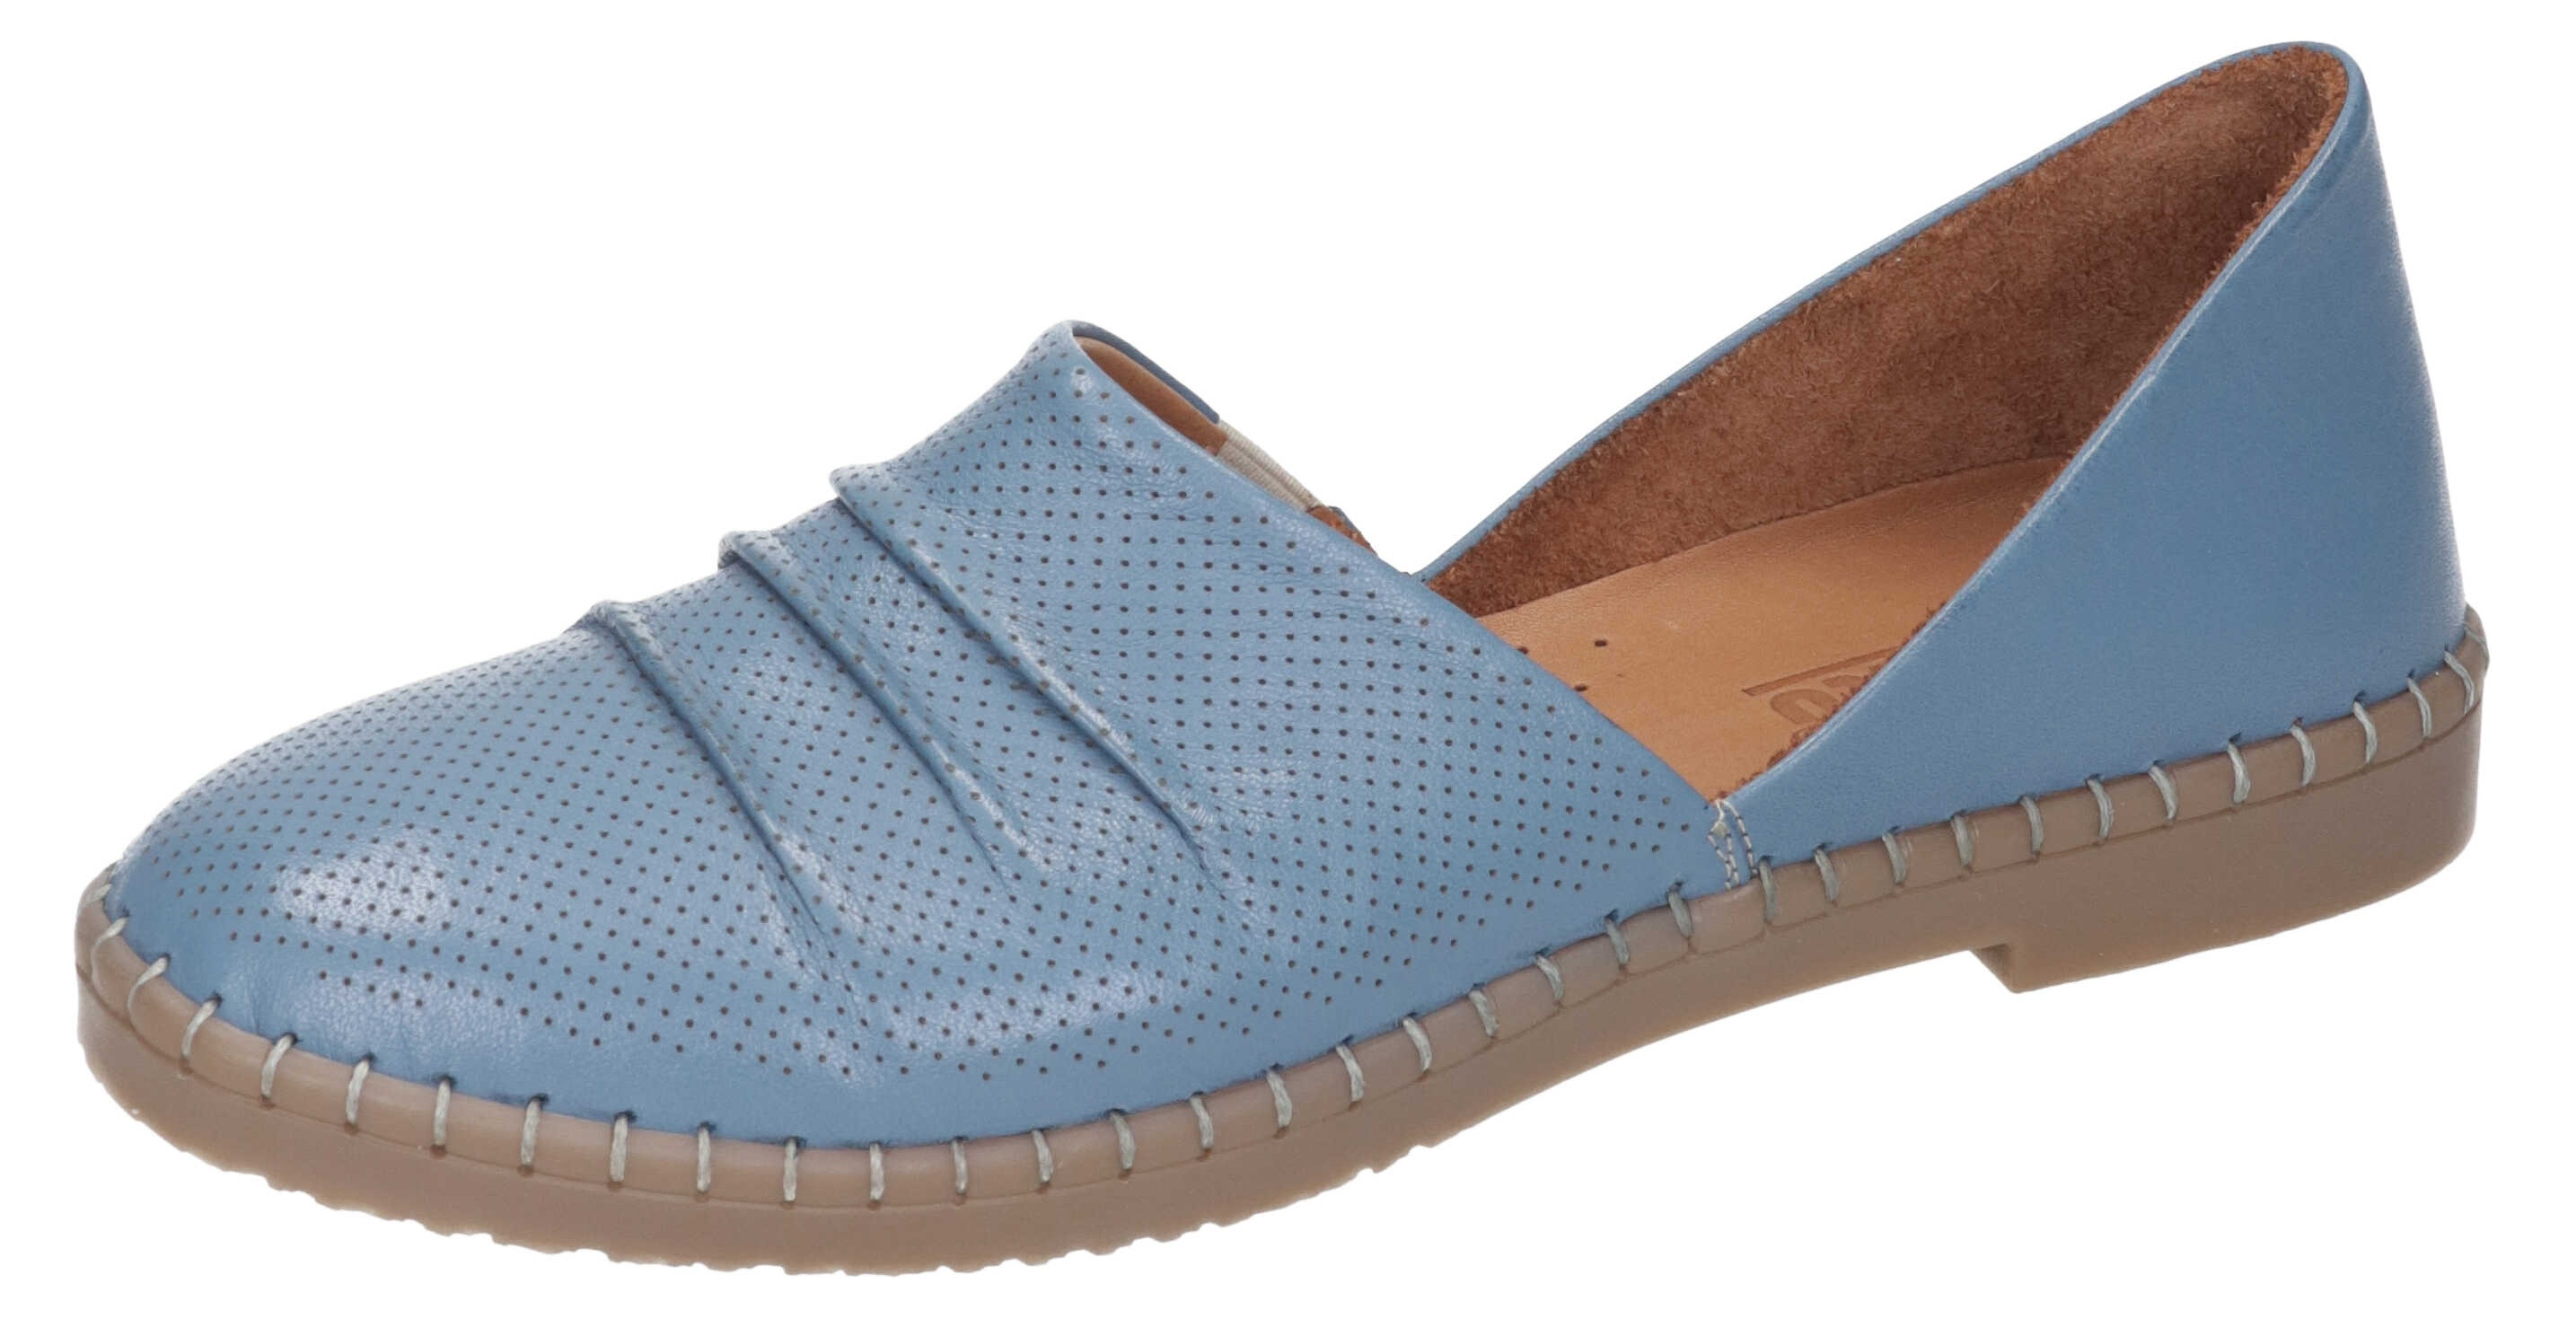 Manitu Damen Slipper blau